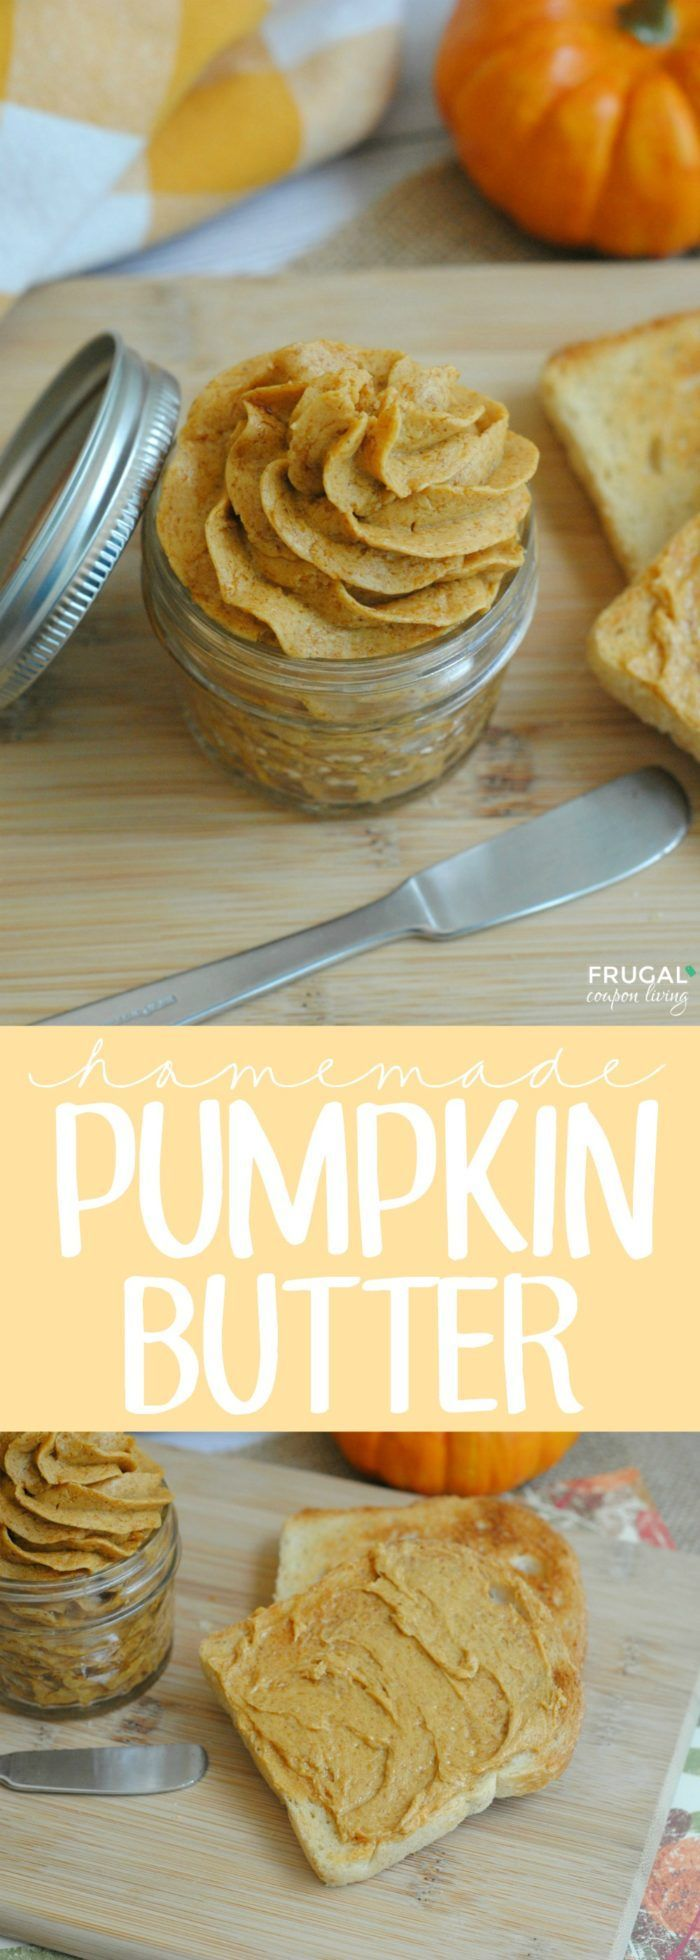 Delicious Homemade Pumpkin Butter Recipe with 5 simple pantry ingredients. This recipe is perfect on warm bread or muffins!  #pumpkinbutter #butterrecipe #pumpkinrecipes #recipes